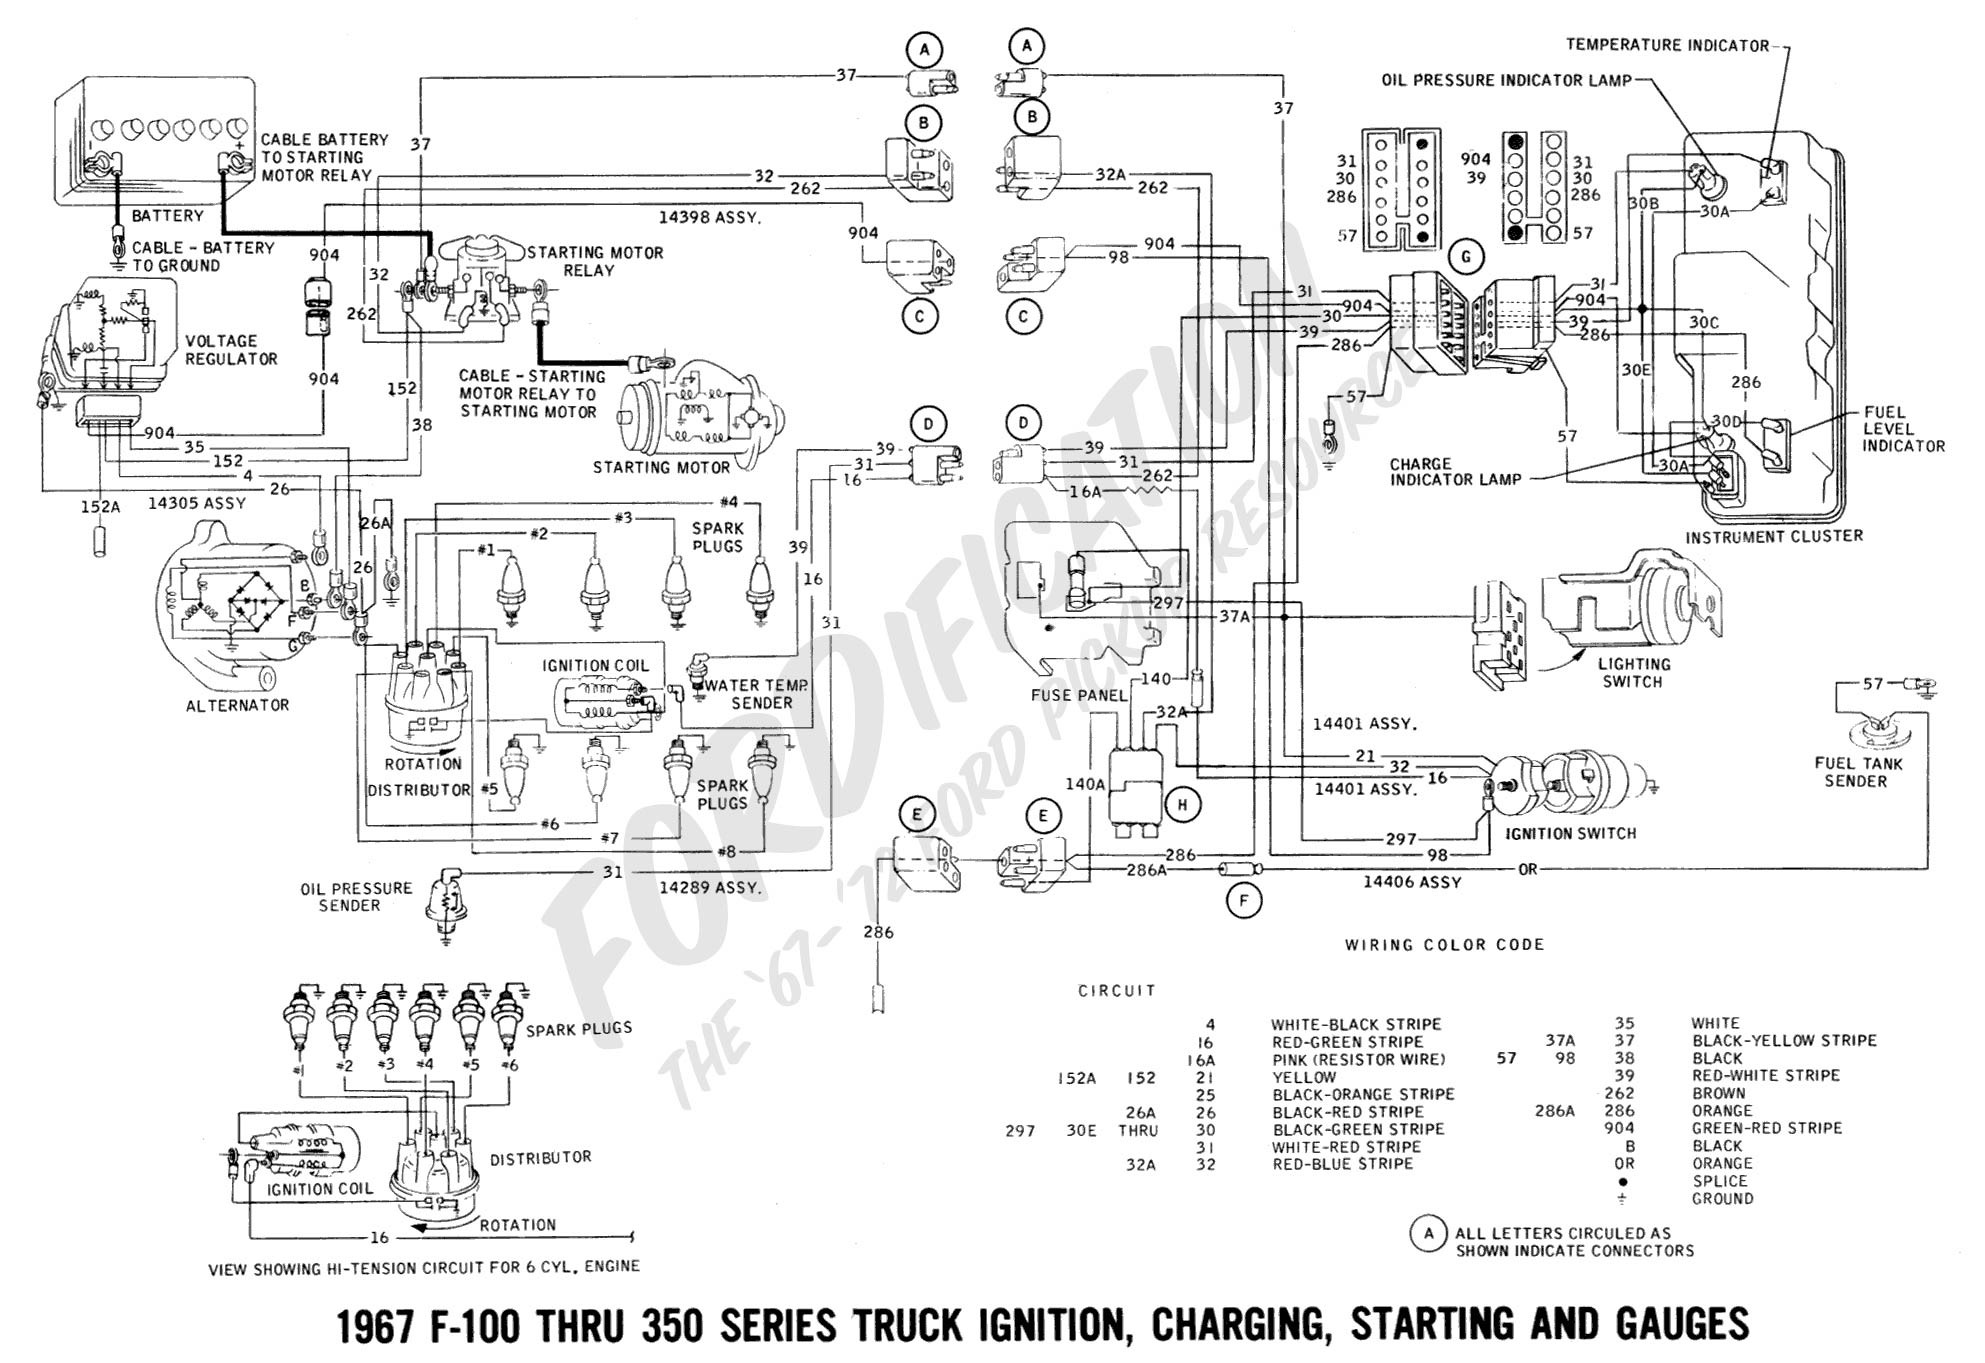 2002 ford Explorer Engine Diagram 4 0 ford Truck Technical Drawings and Schematics Section H Wiring Of 2002 ford Explorer Engine Diagram 4 0